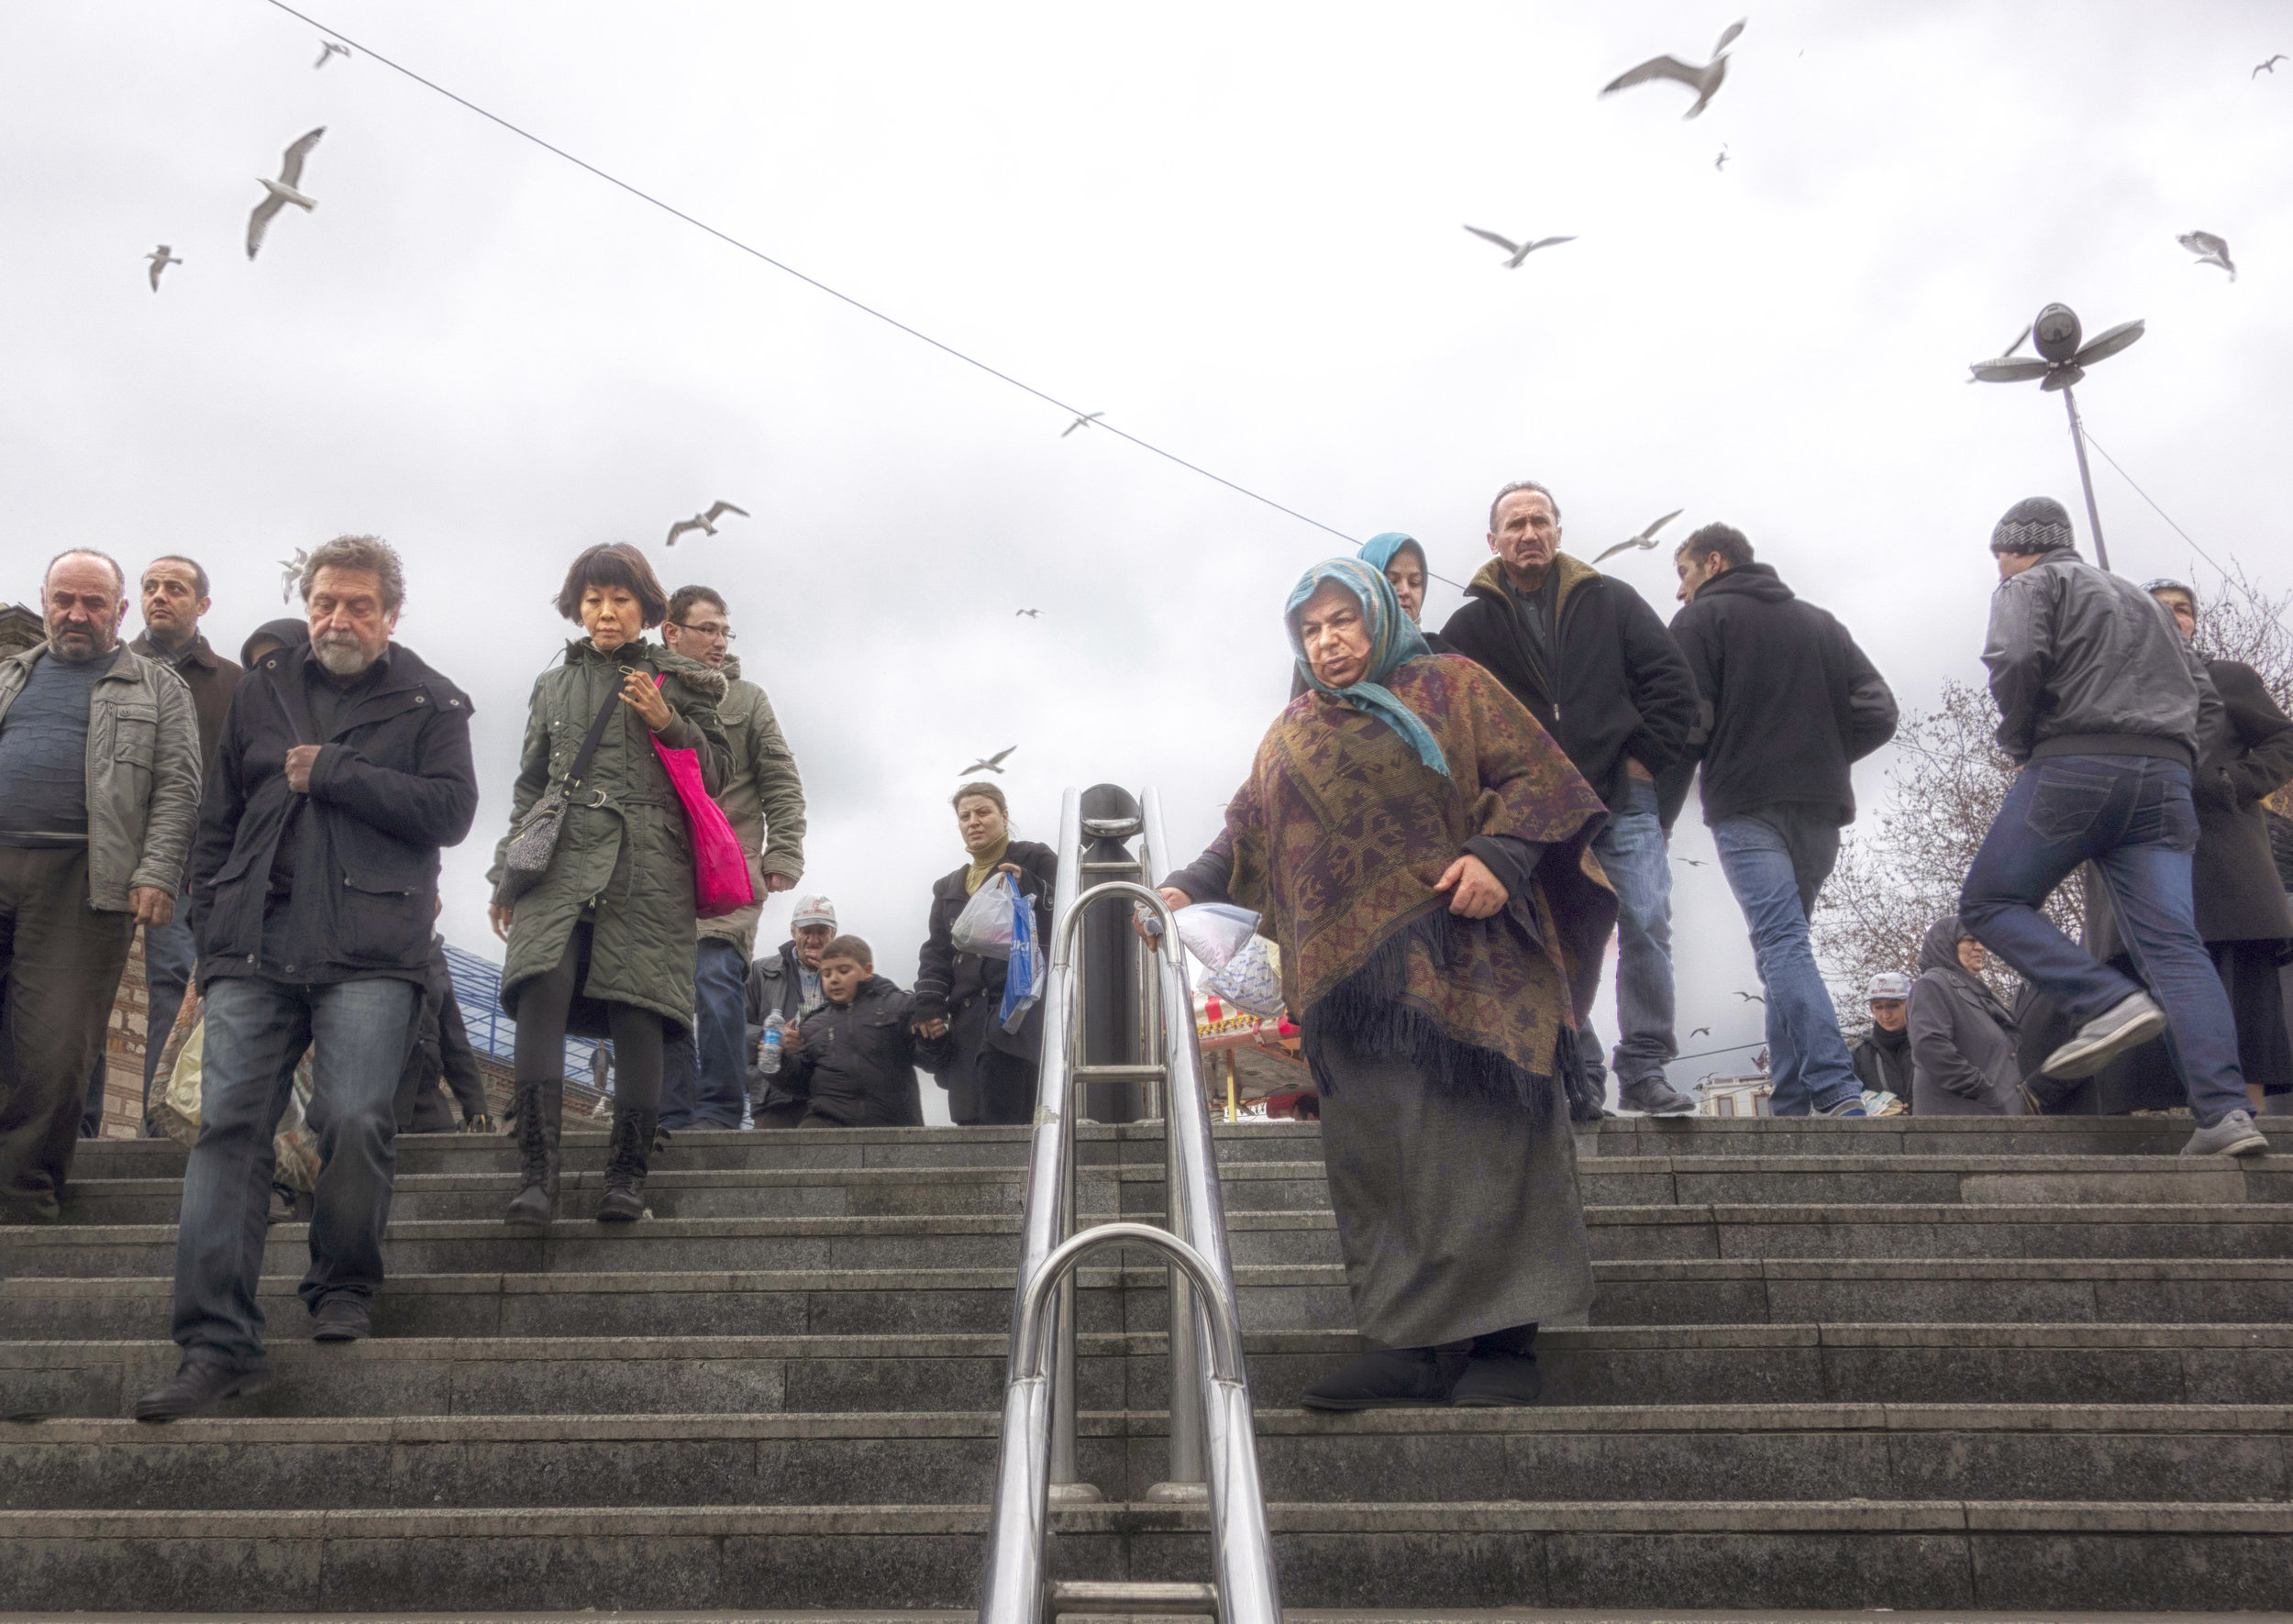 Stairs and Birds